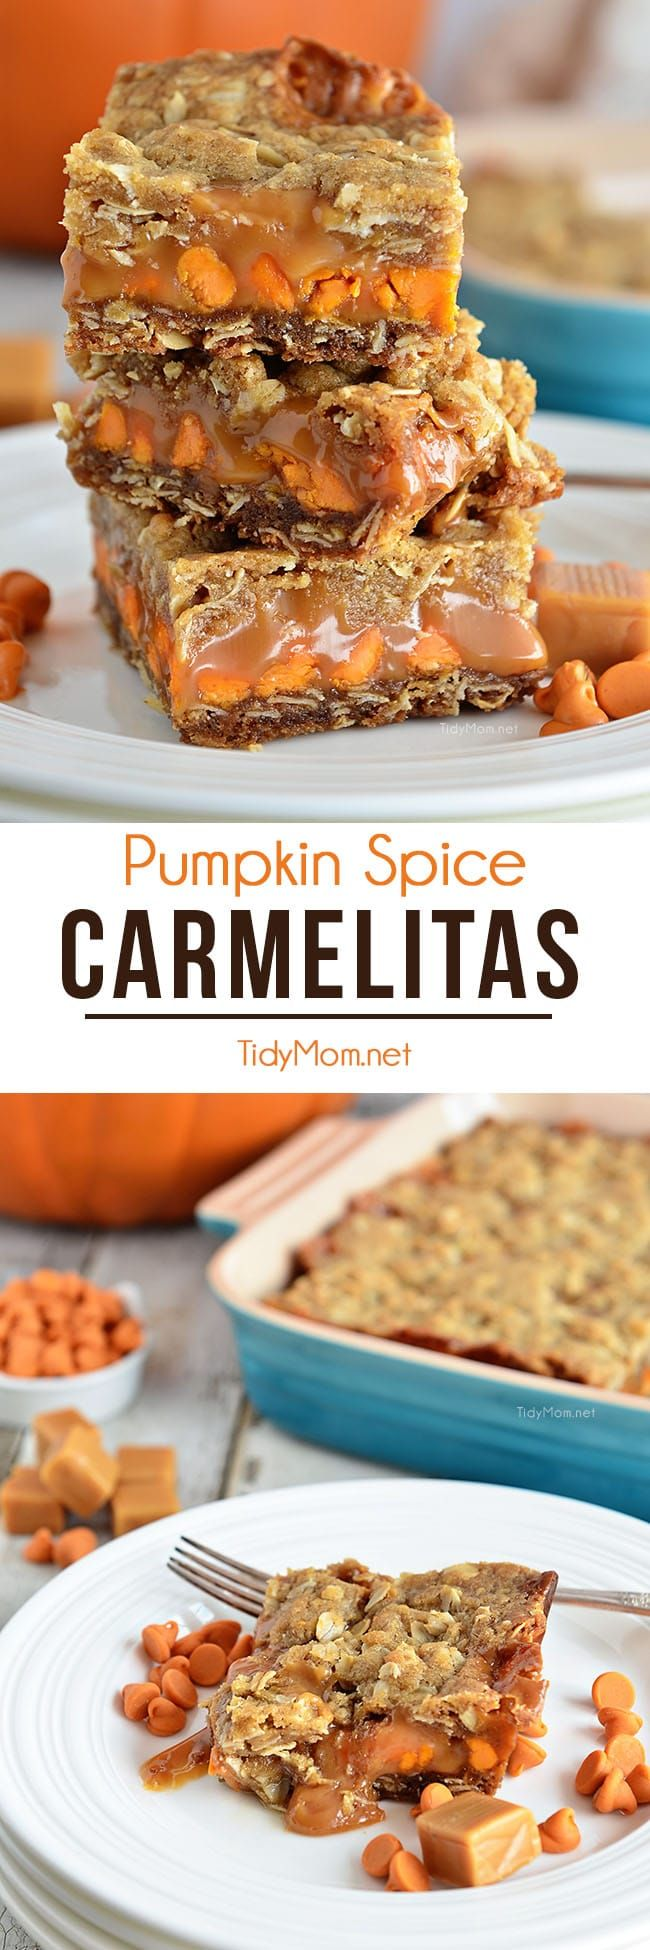 Pumpkin Spice Carmelita Bars Whether for dinner guests, anafter-school snack, or even a late-night treat, these Pumpkin Spice Carmelita Barsare the perfectway to satisfy a sweet tooth. Find the printable recipe + how-to video at